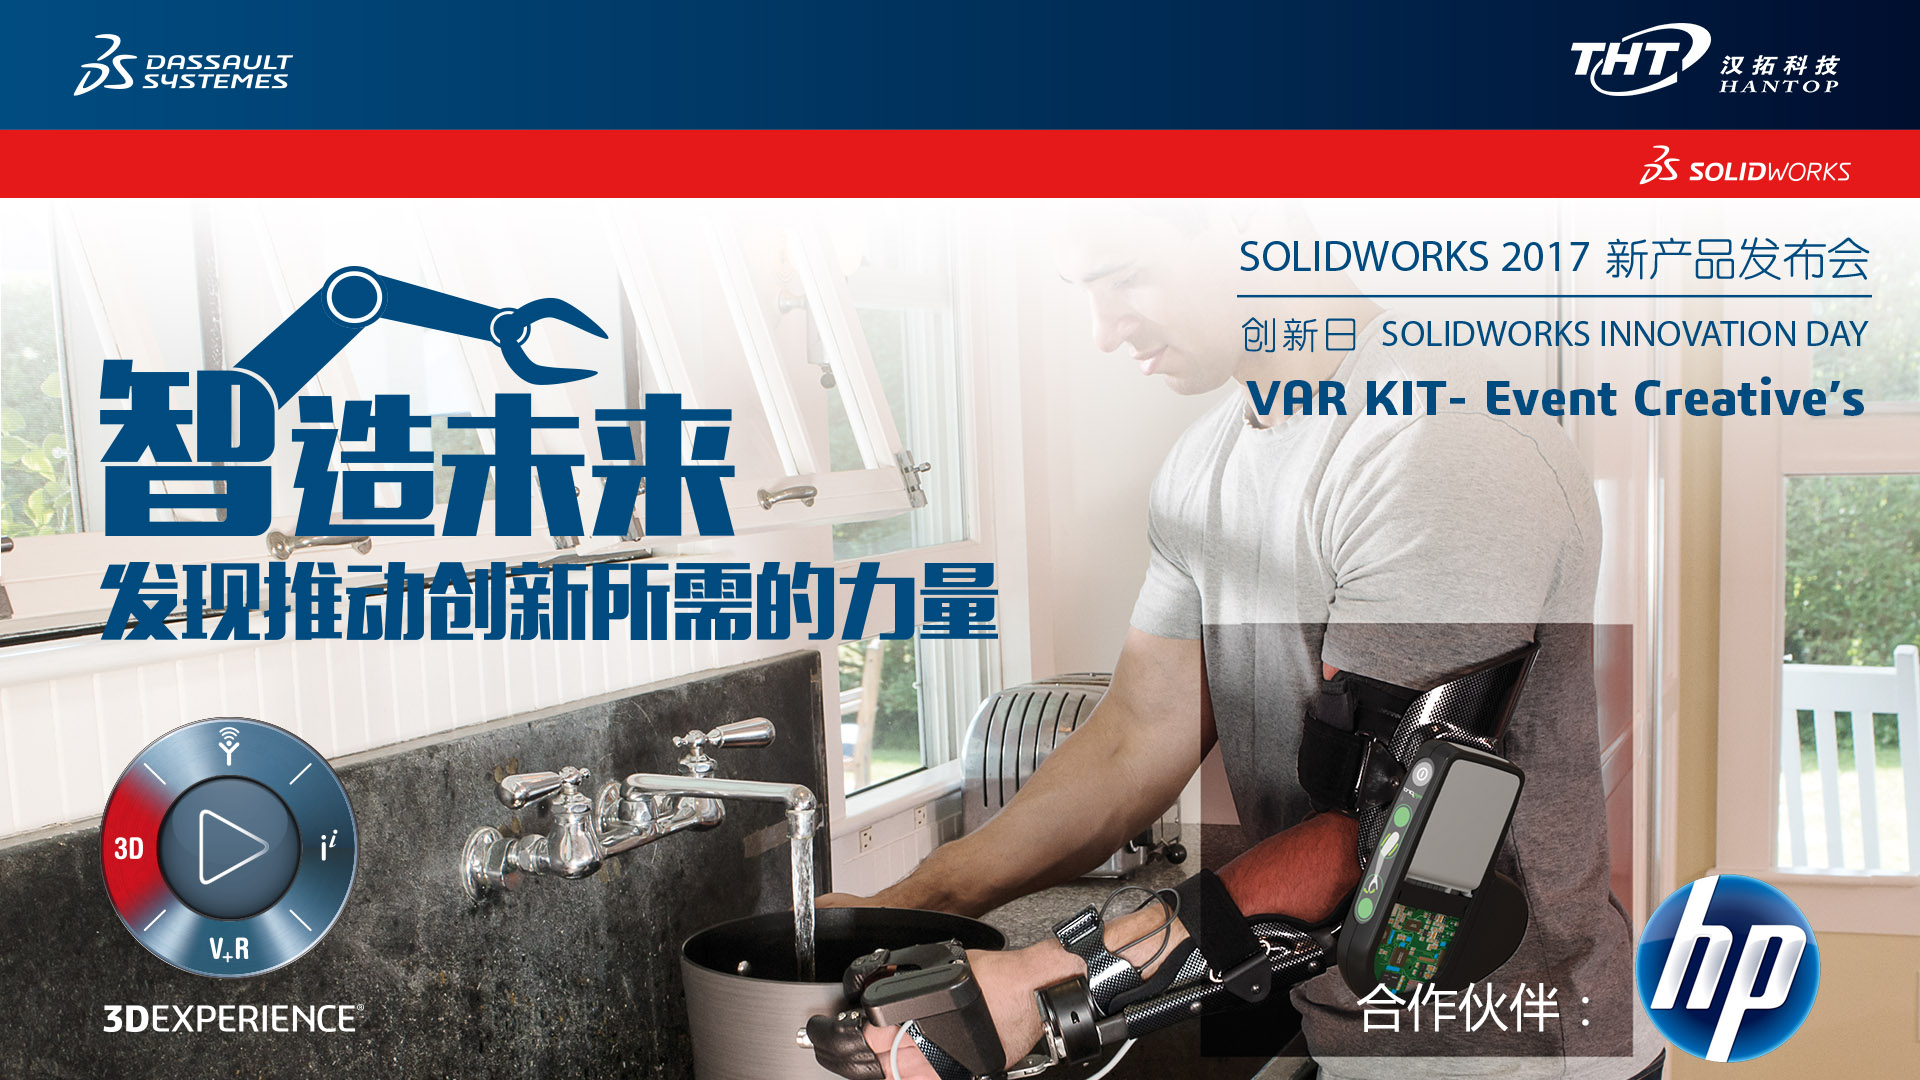 SolidWorks2017 新功能发布会(已结束)